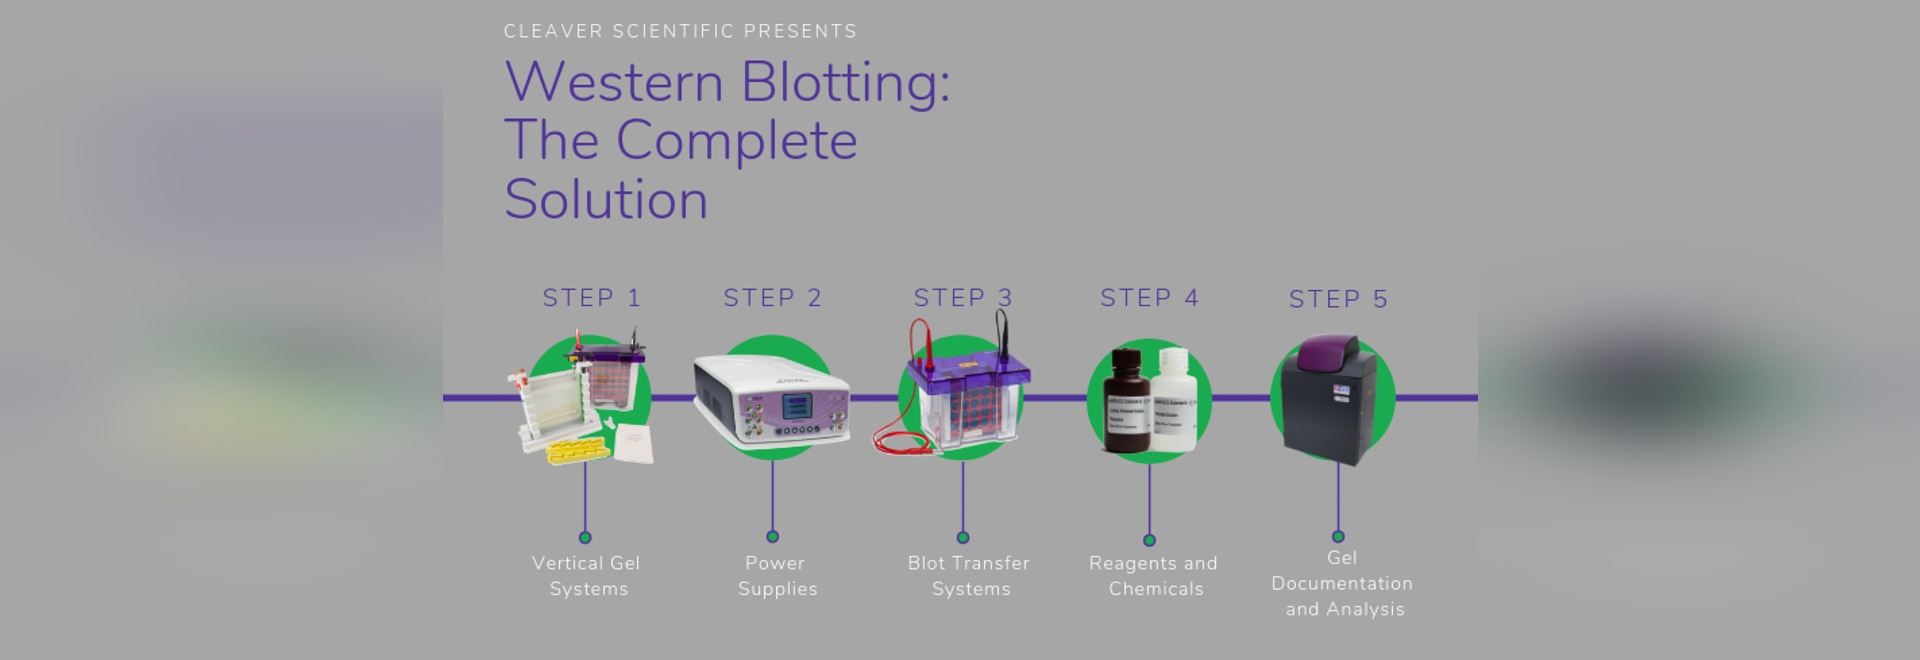 Western Blotting: The Complete Solution